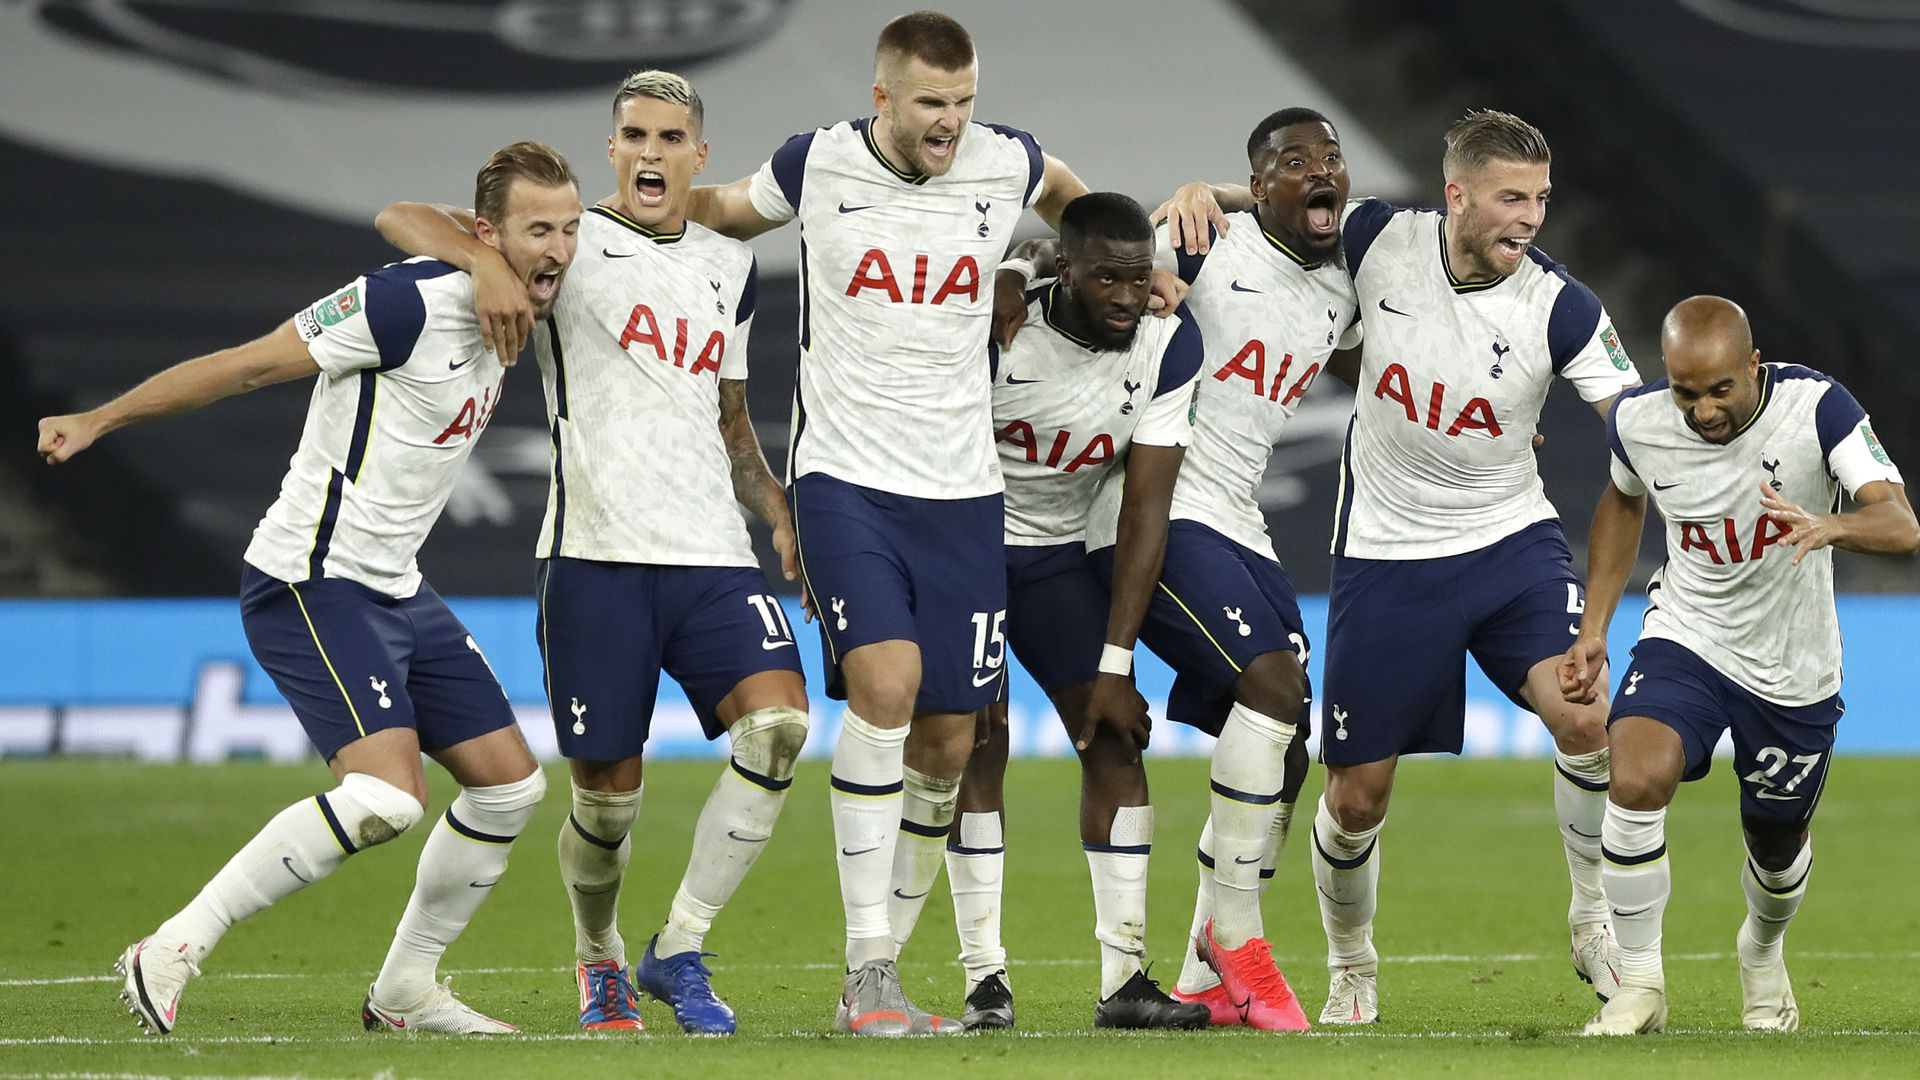 Spurs beat Chelsea on penalties after comeback